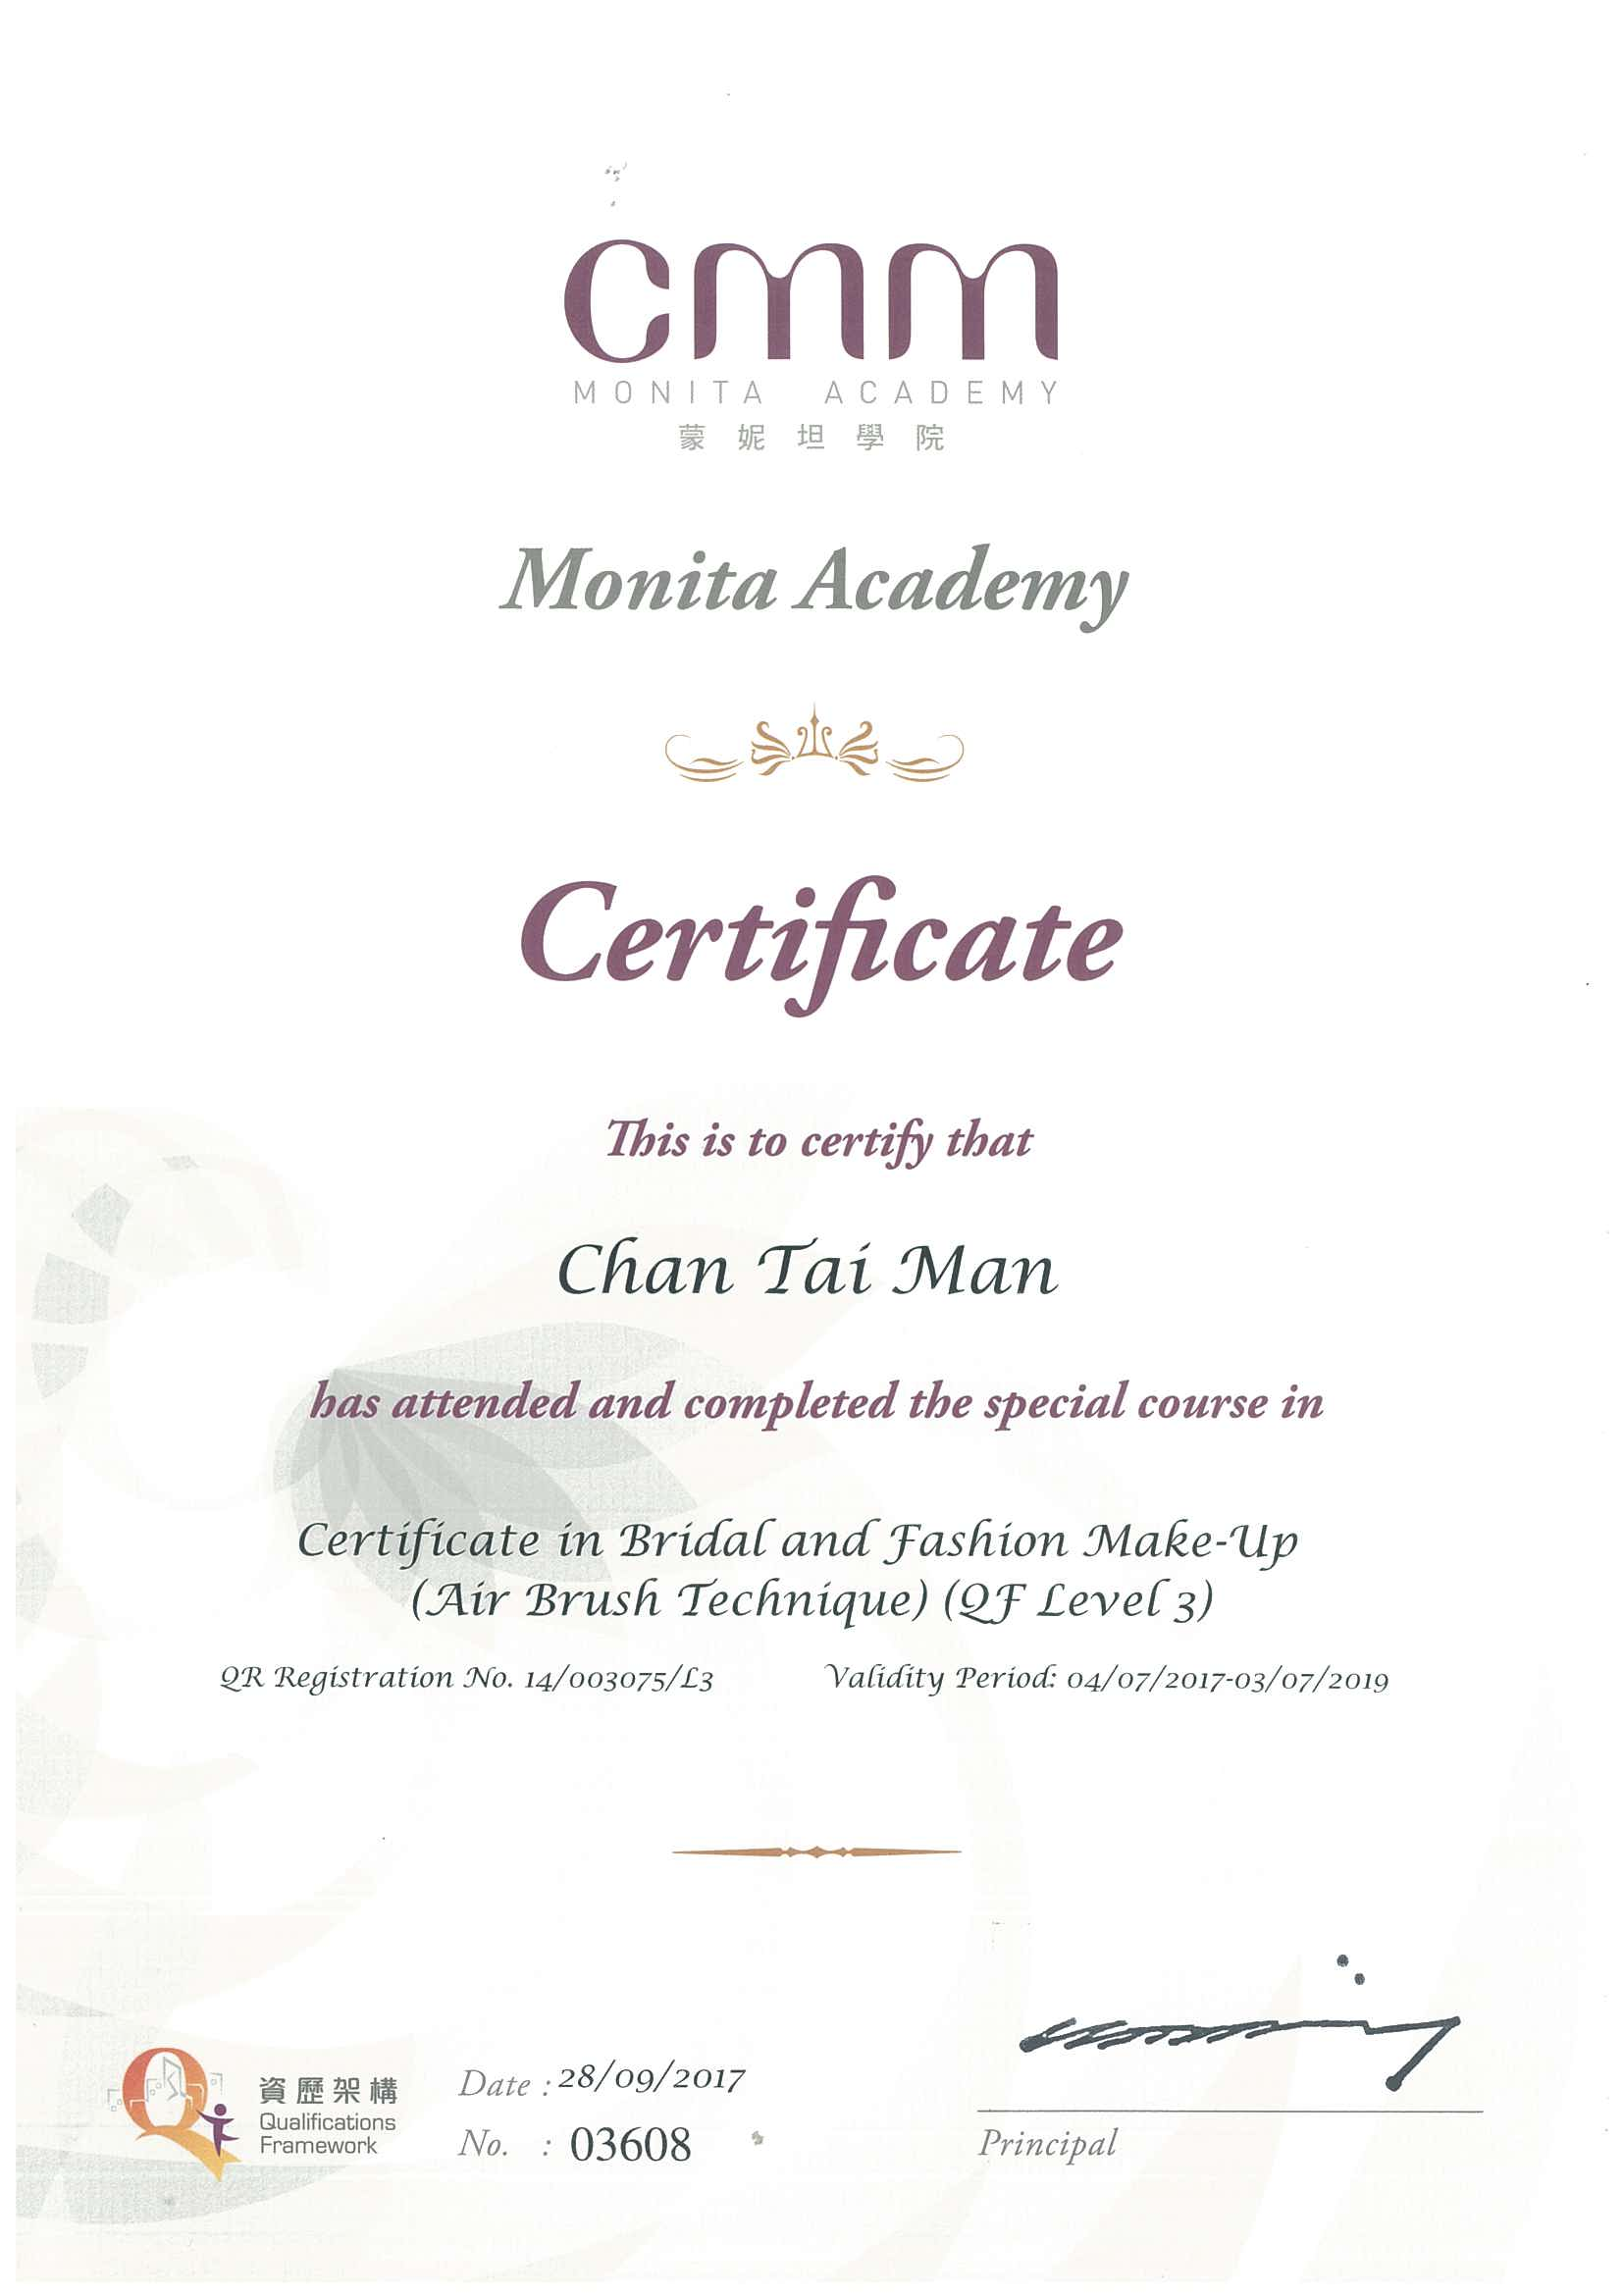 2.Certificate in Bridal and Fashion Make-Up(Air Brush Technique)(QF Level 3) 29-11-2019 at 11.17.48_Page_1